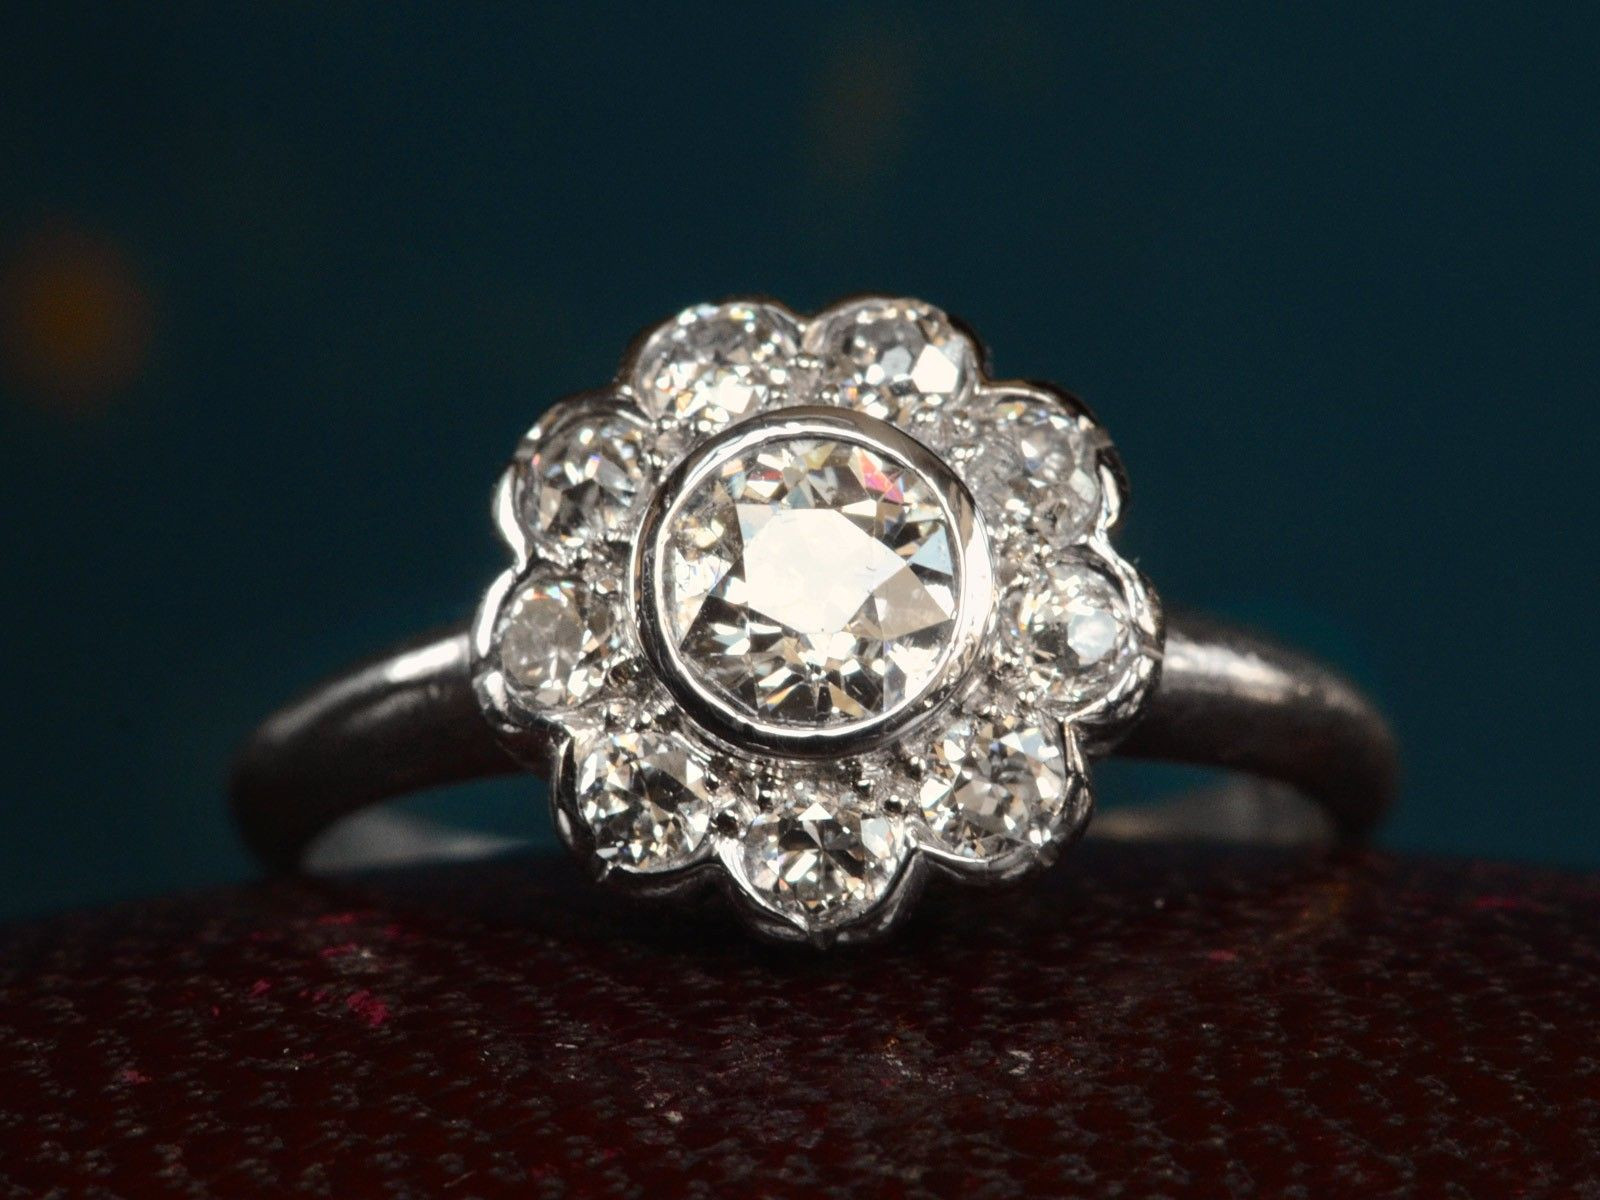 rings engagement products antique jewellery marie daisy diamond ring cluster natalie